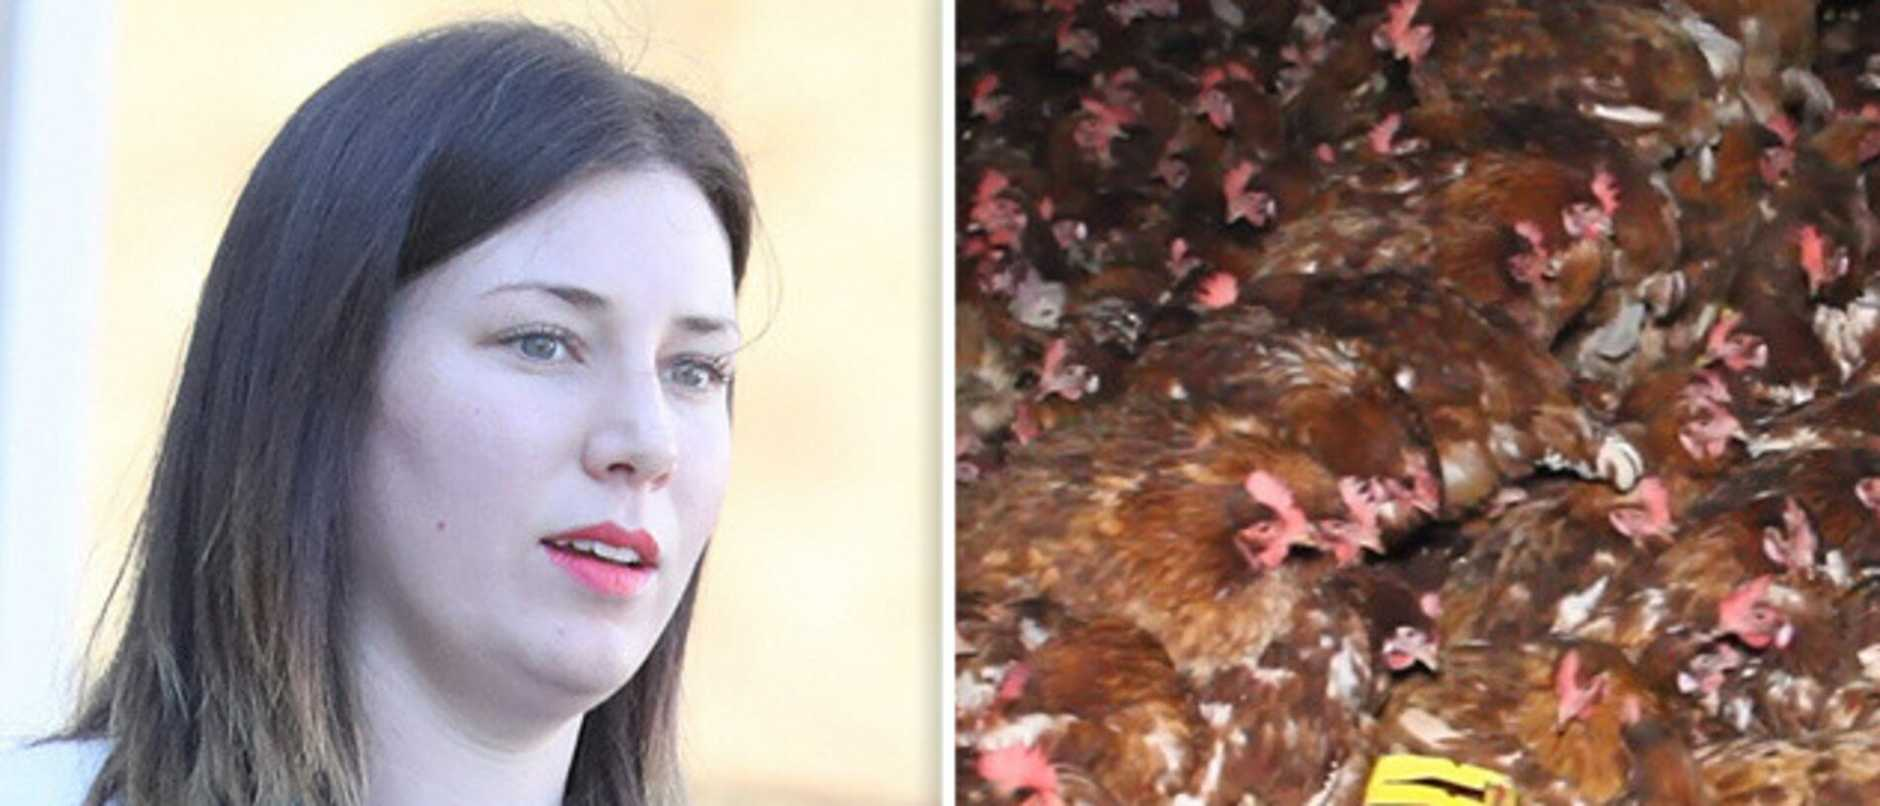 Animal activists who broke into a chicken farm are facing court.